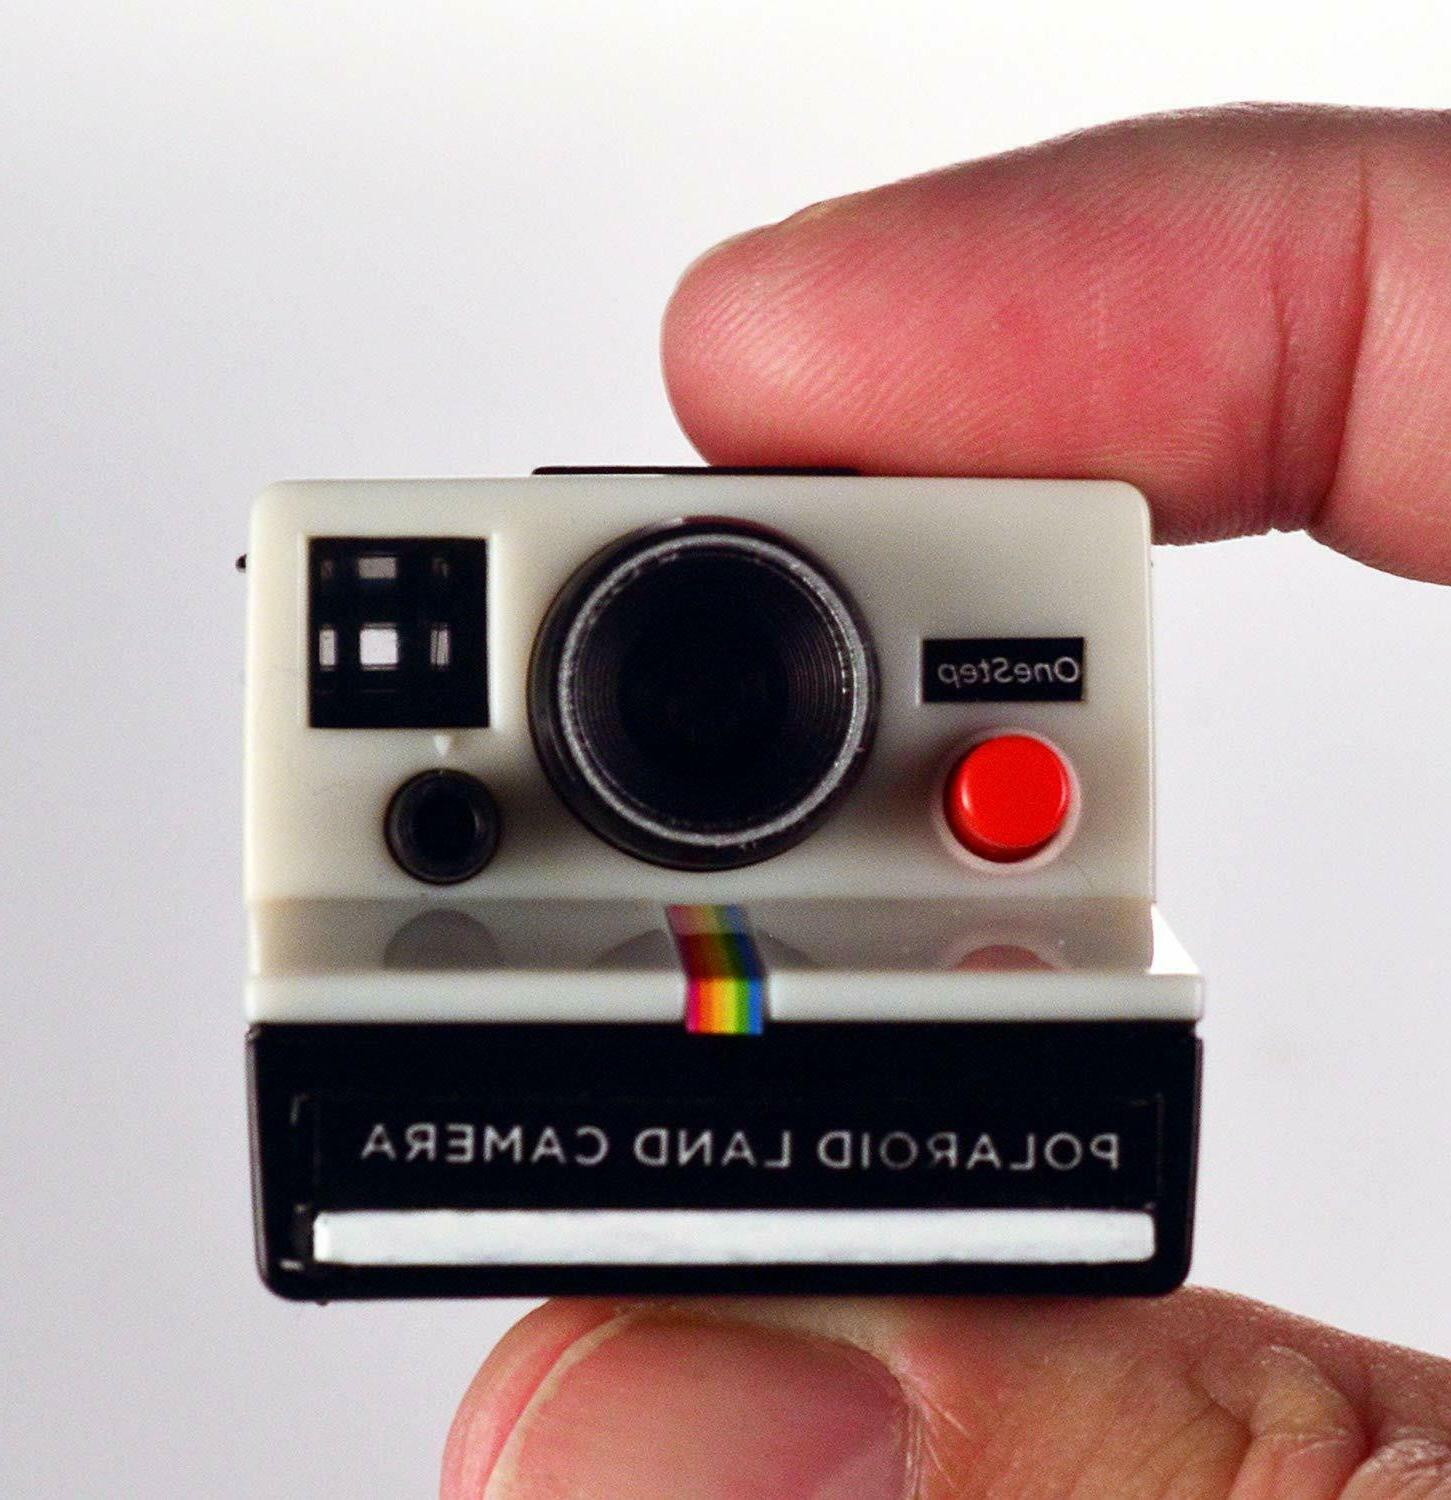 NEW COOLEST POLAROID CAMERA Toy Keychain KEY CHAIN